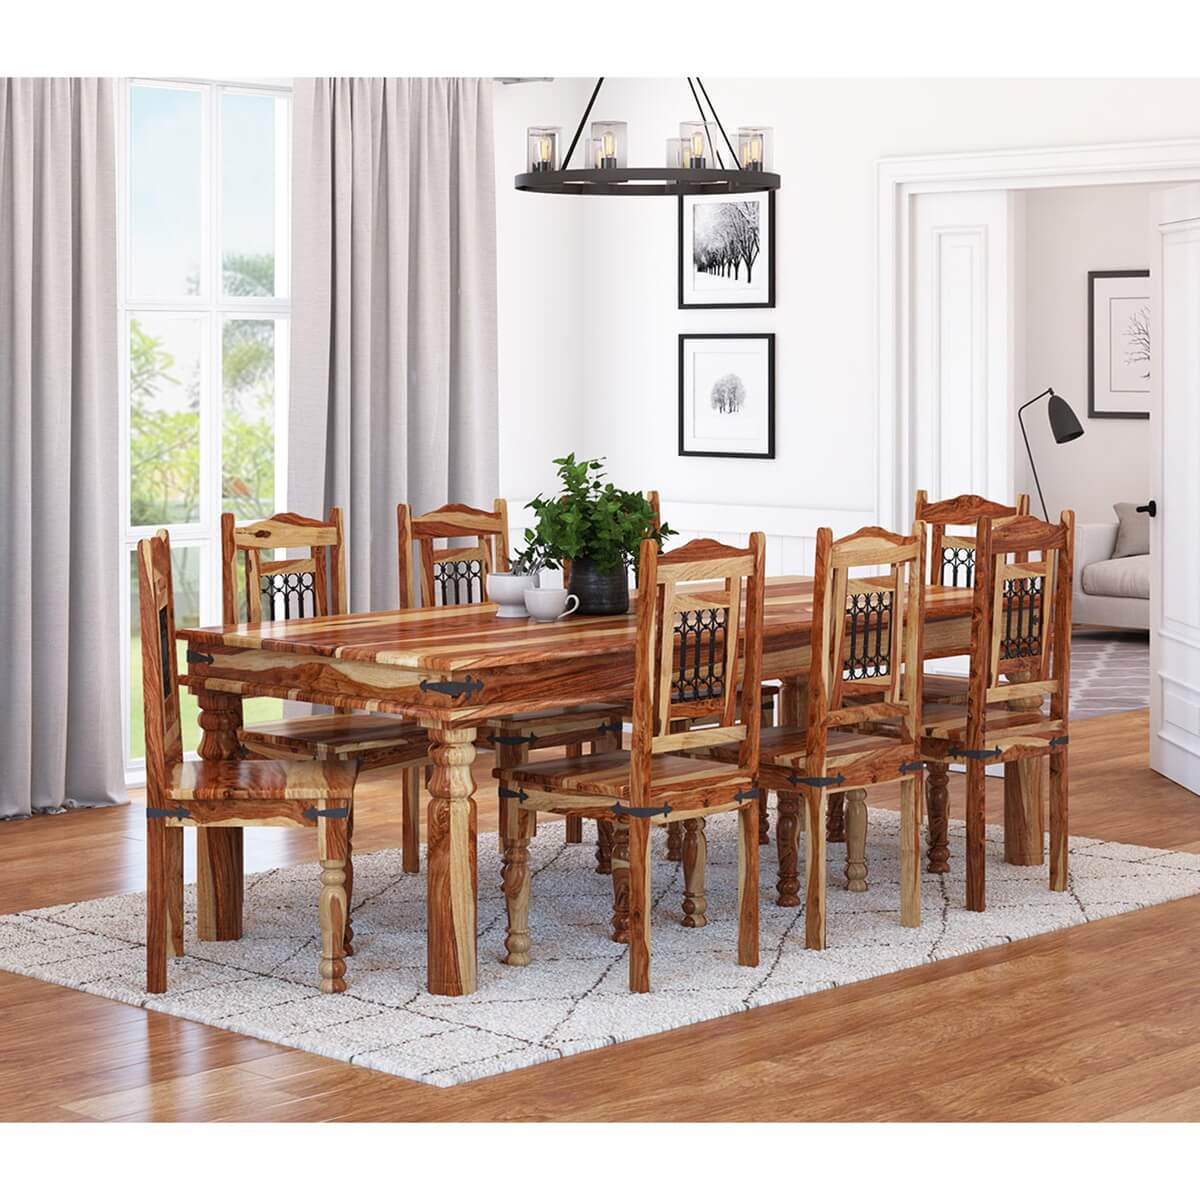 Oak Wood Table And Chairs: Dallas Classic Solid Wood Rustic Dining Room Table And